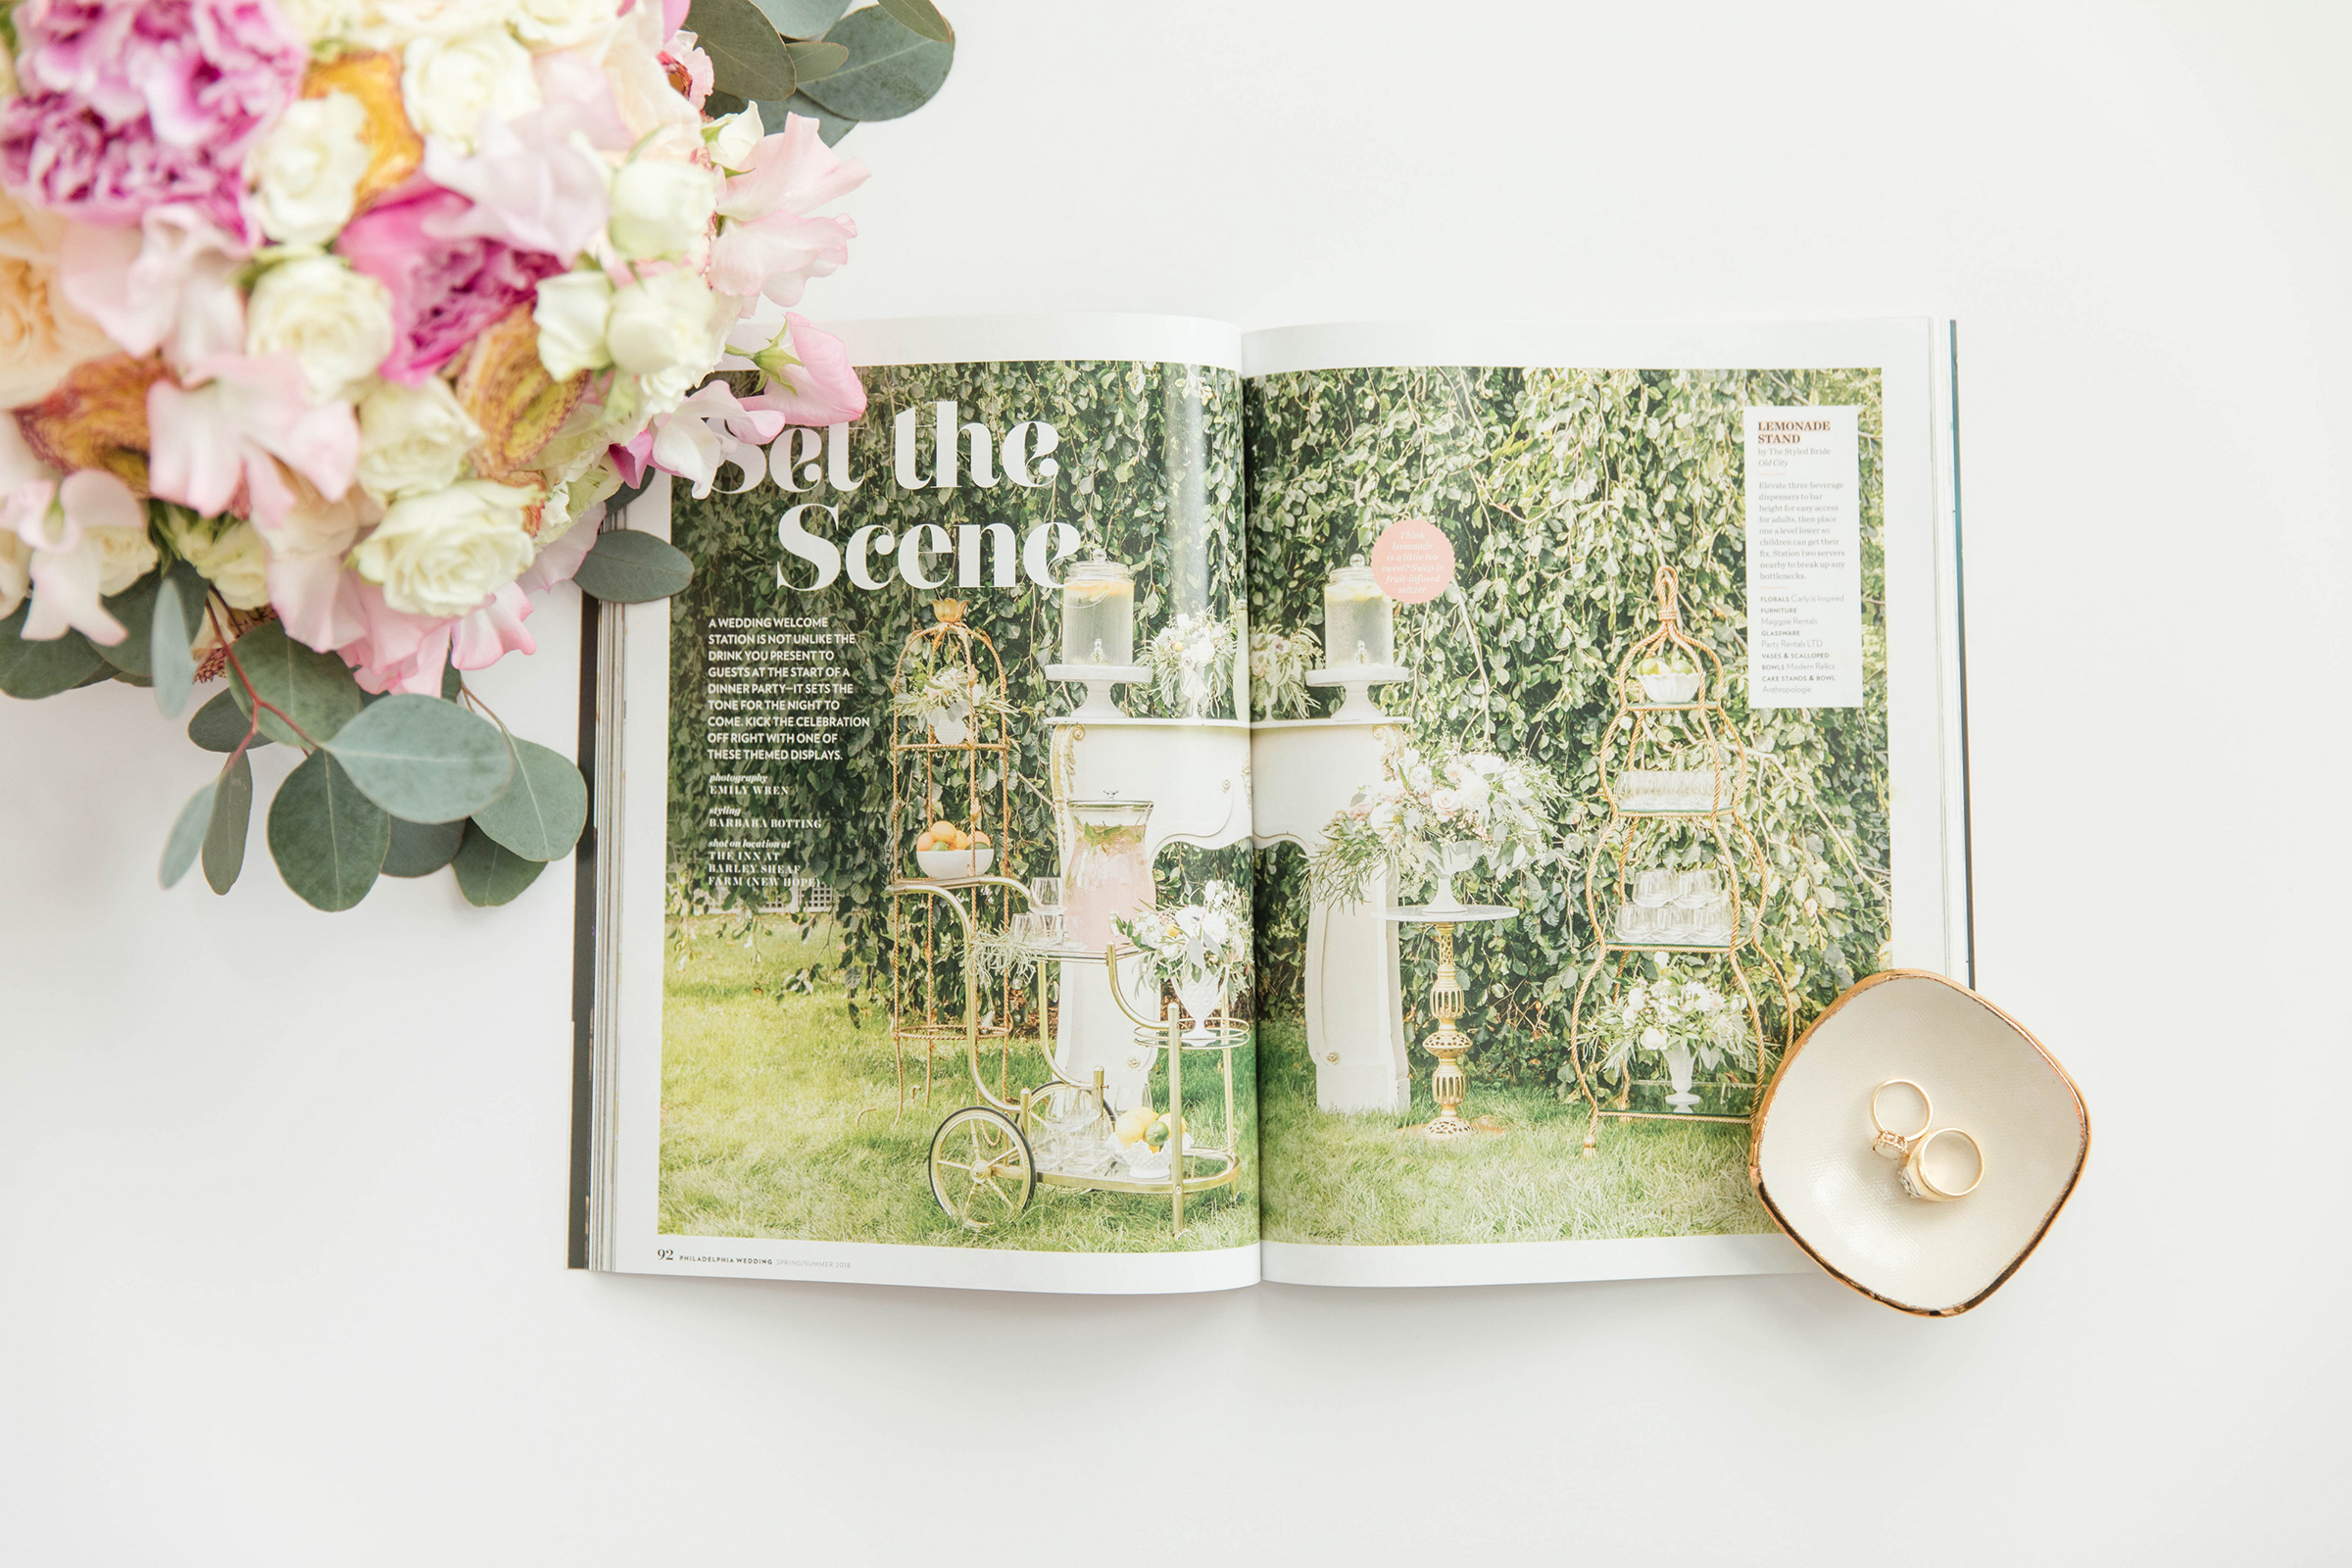 Carly_is_inspired_wedding_planning_styling_stylist_copywriting_small_business_businesses_featured_philadelphia